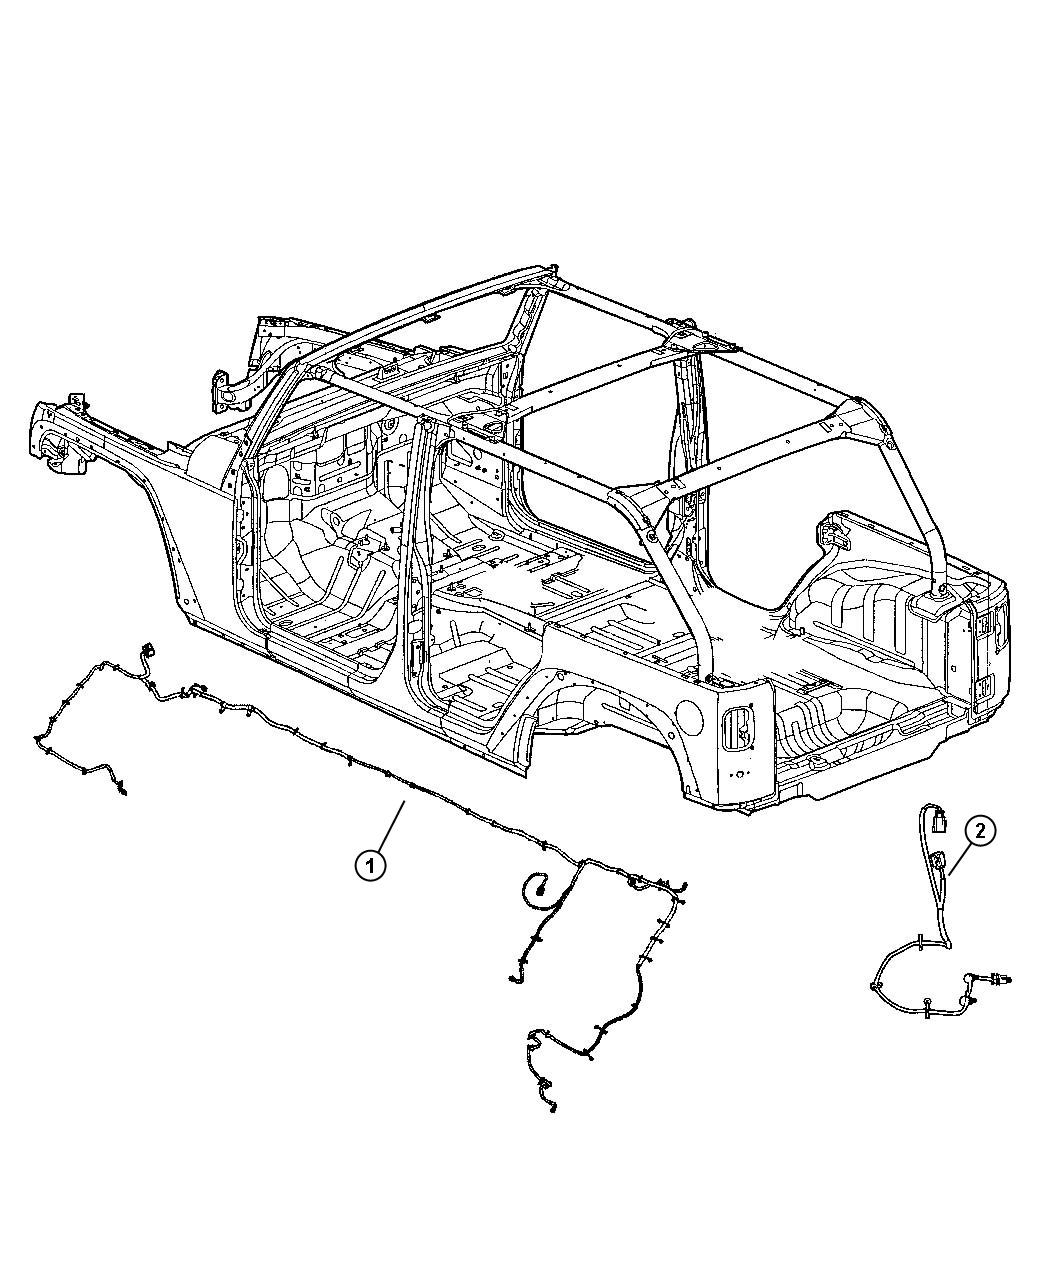 Jeep Wrangler Wiring. Trailer tow. Chassis, module